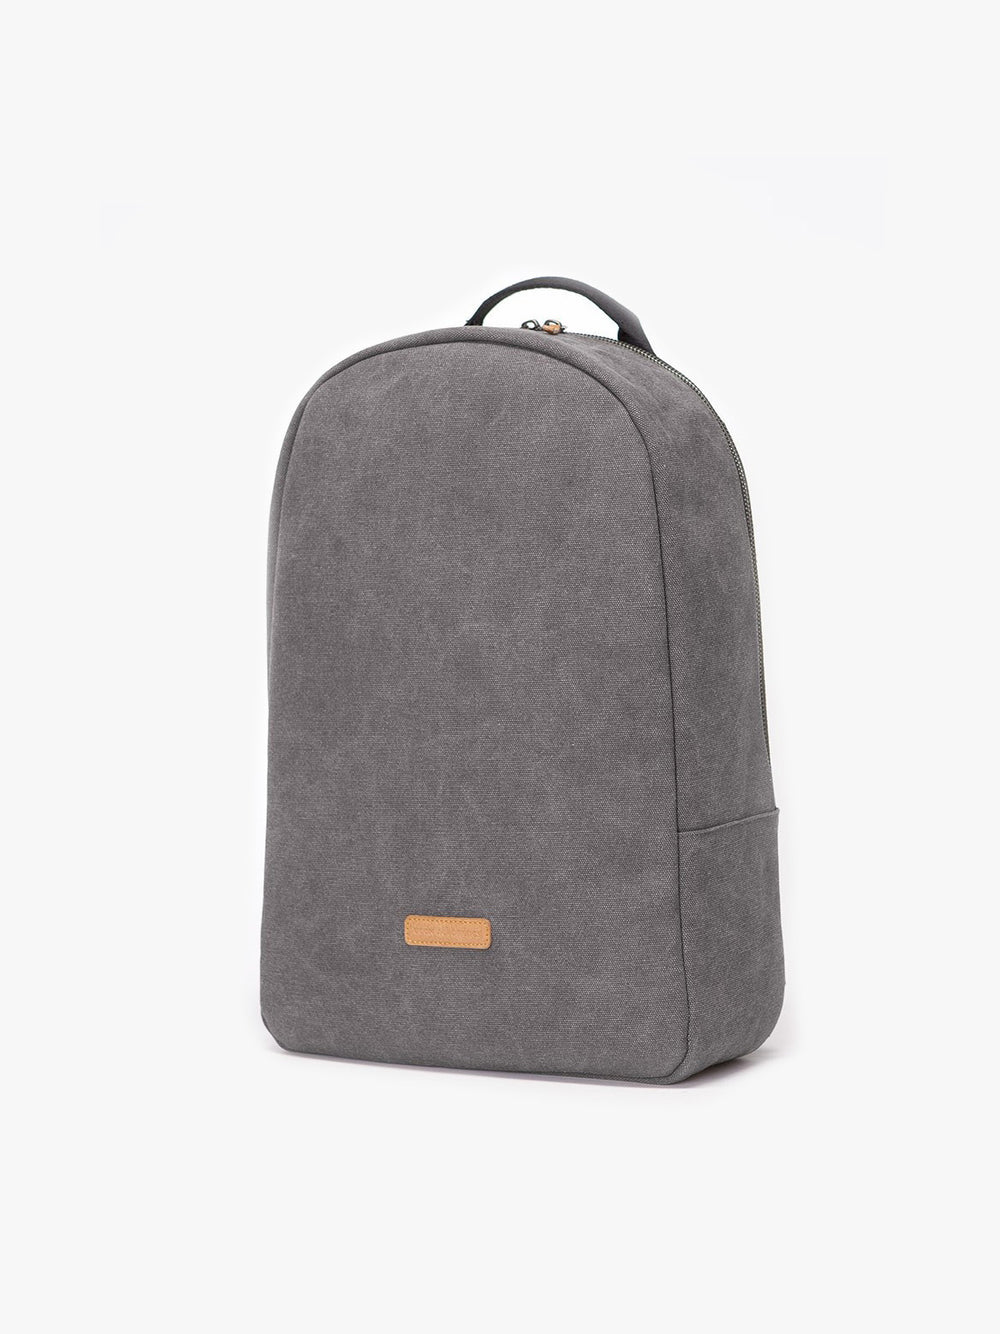 Marvin backpack minimalist style designed in Berlin